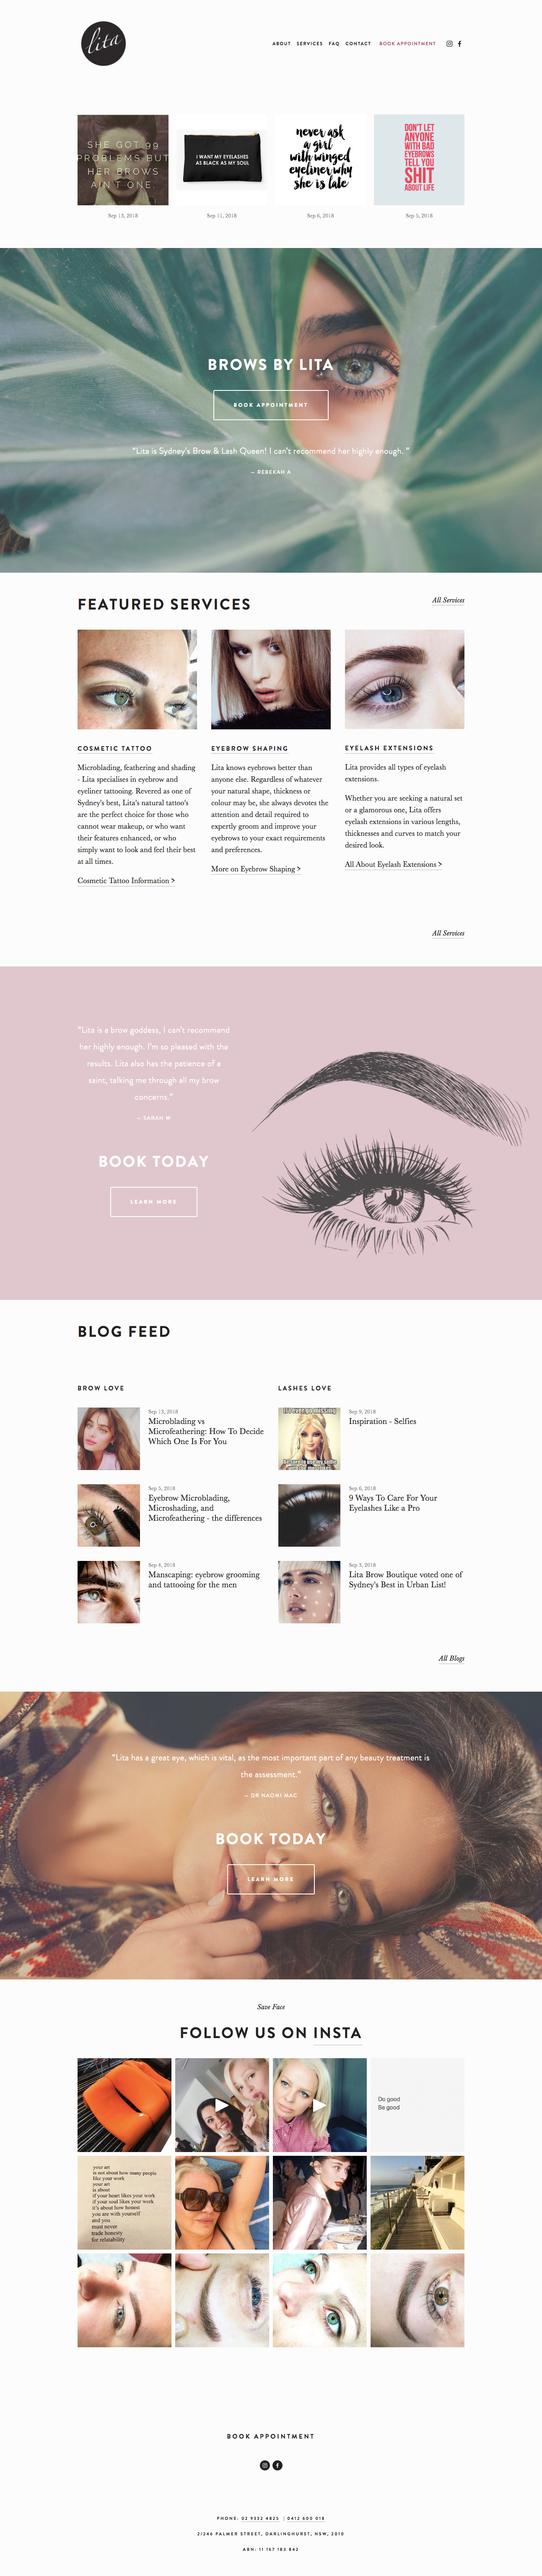 Lita Brow Boutique homepage by Wild Willow Design.